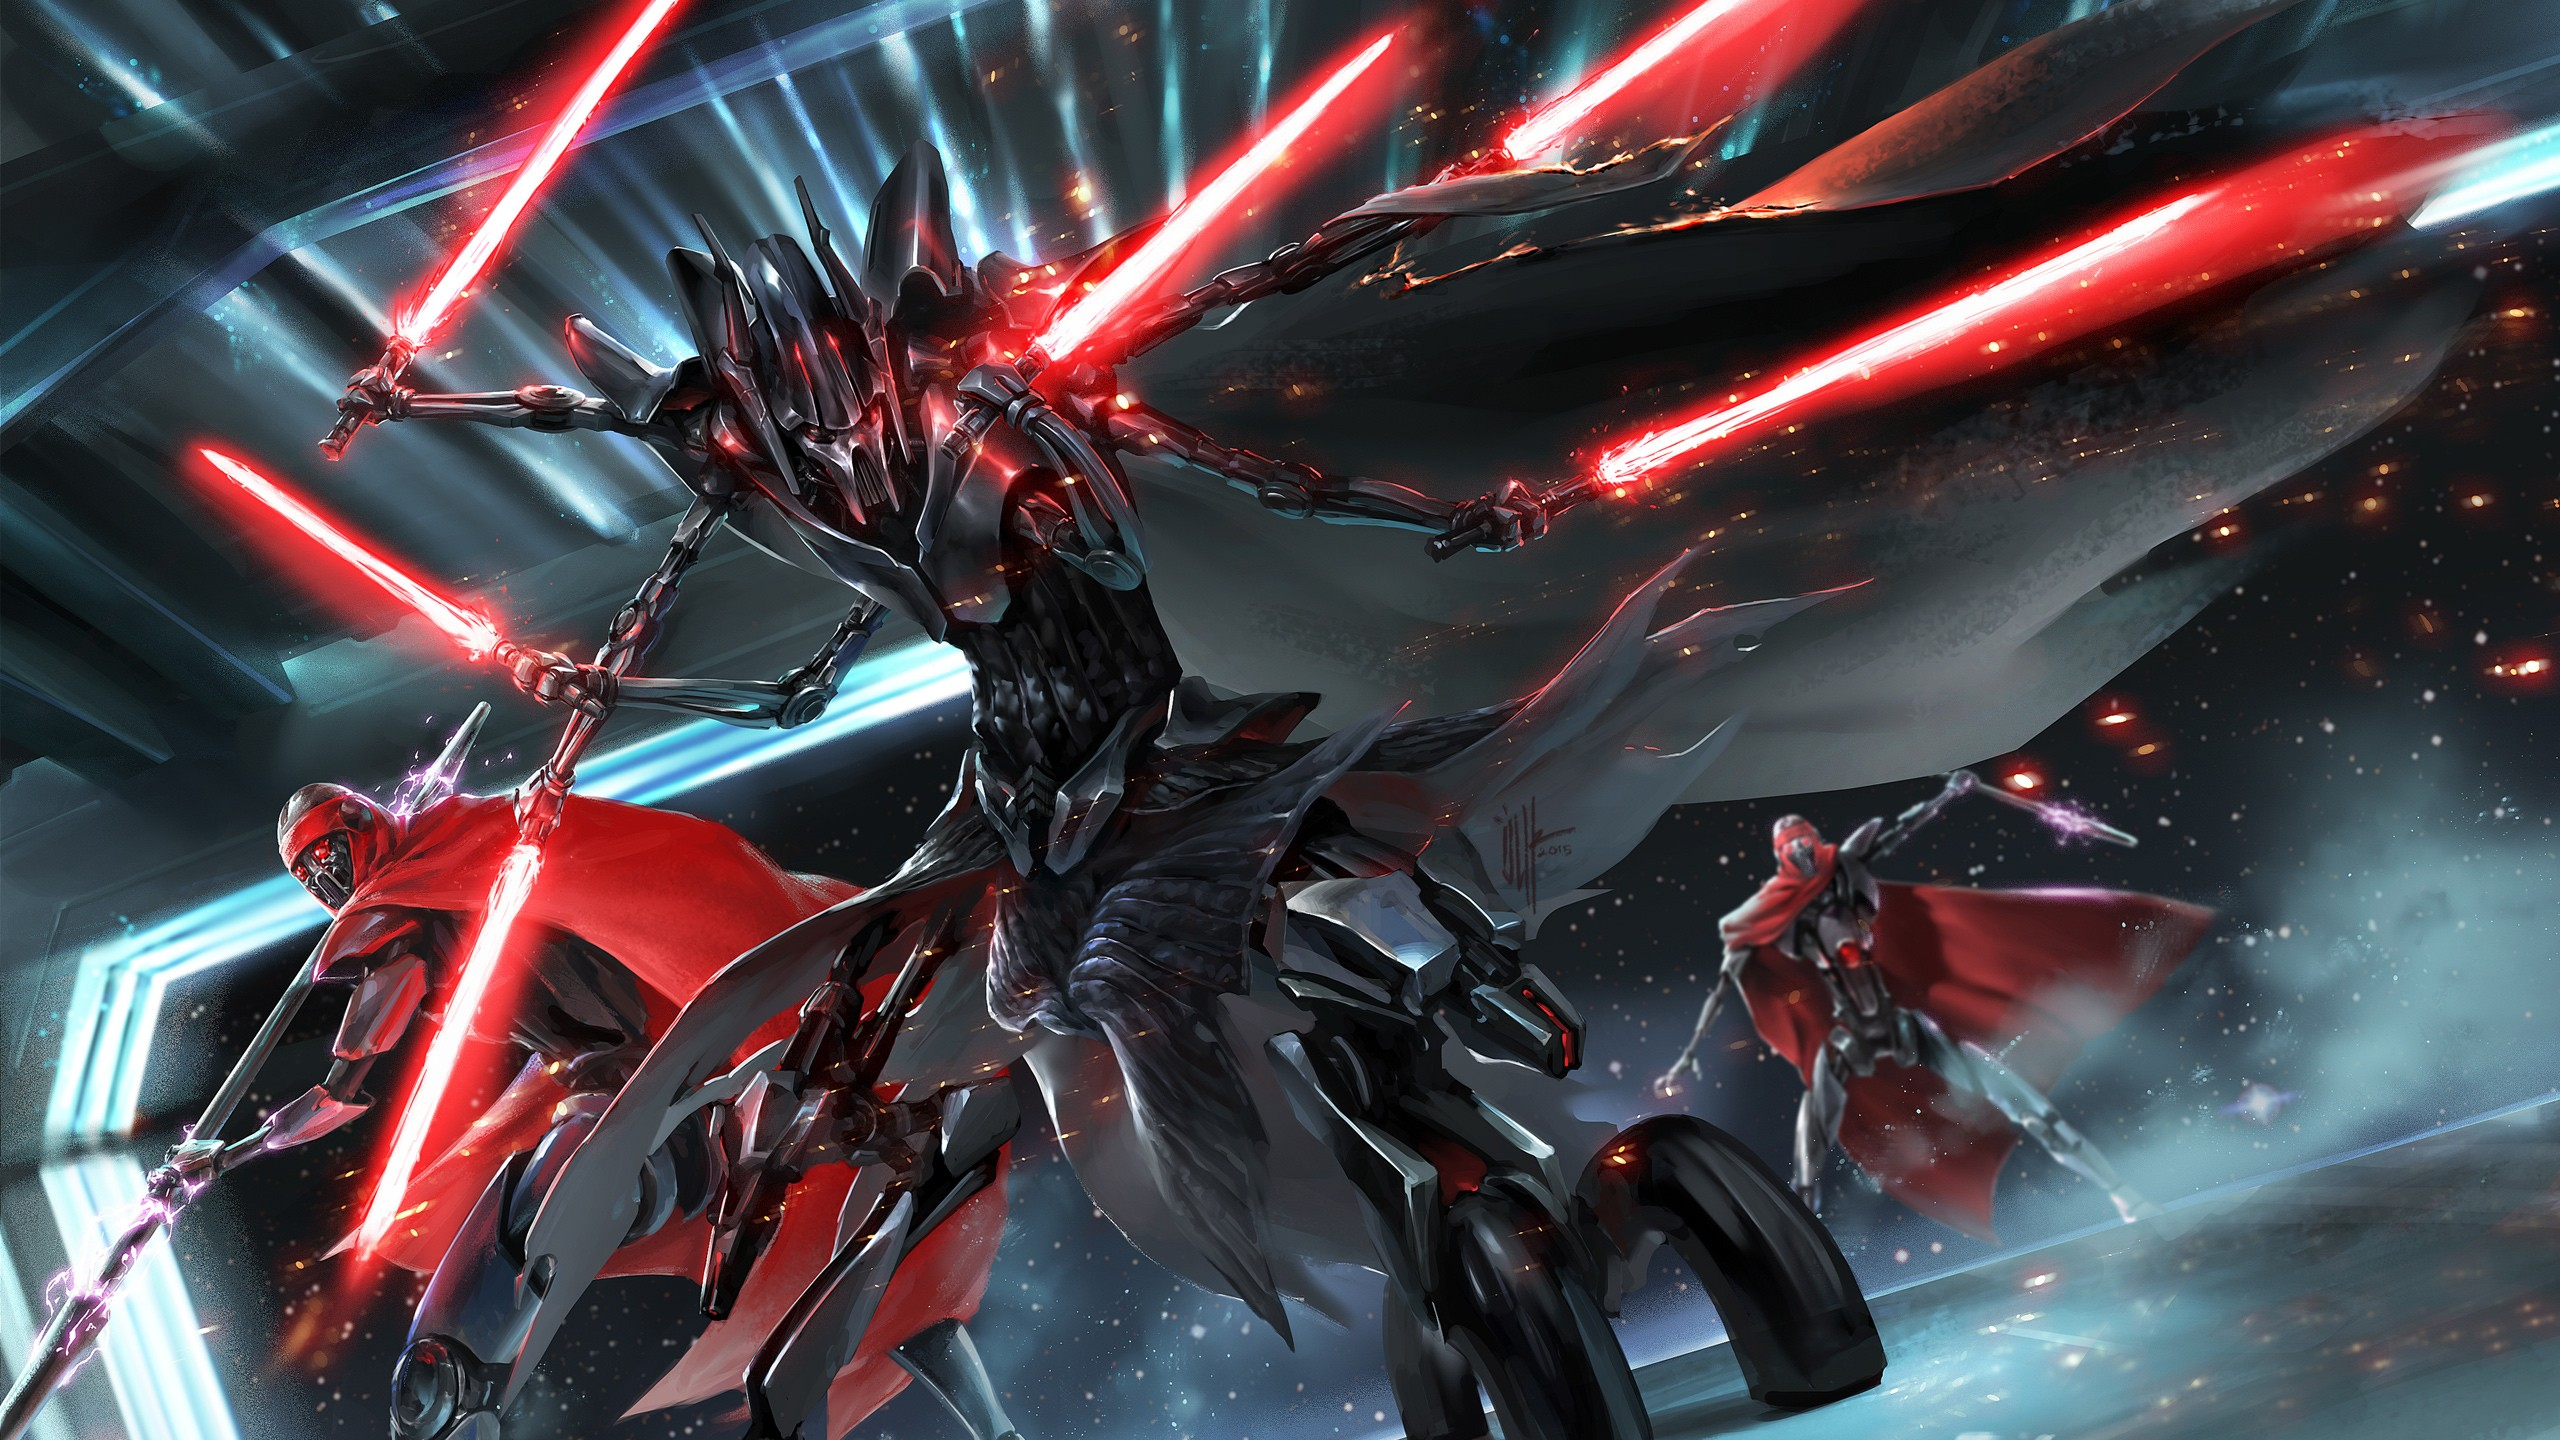 Iphone 5s Wallpaper Anime General Grievous Star Wars Wallpapers Hd Wallpapers Id